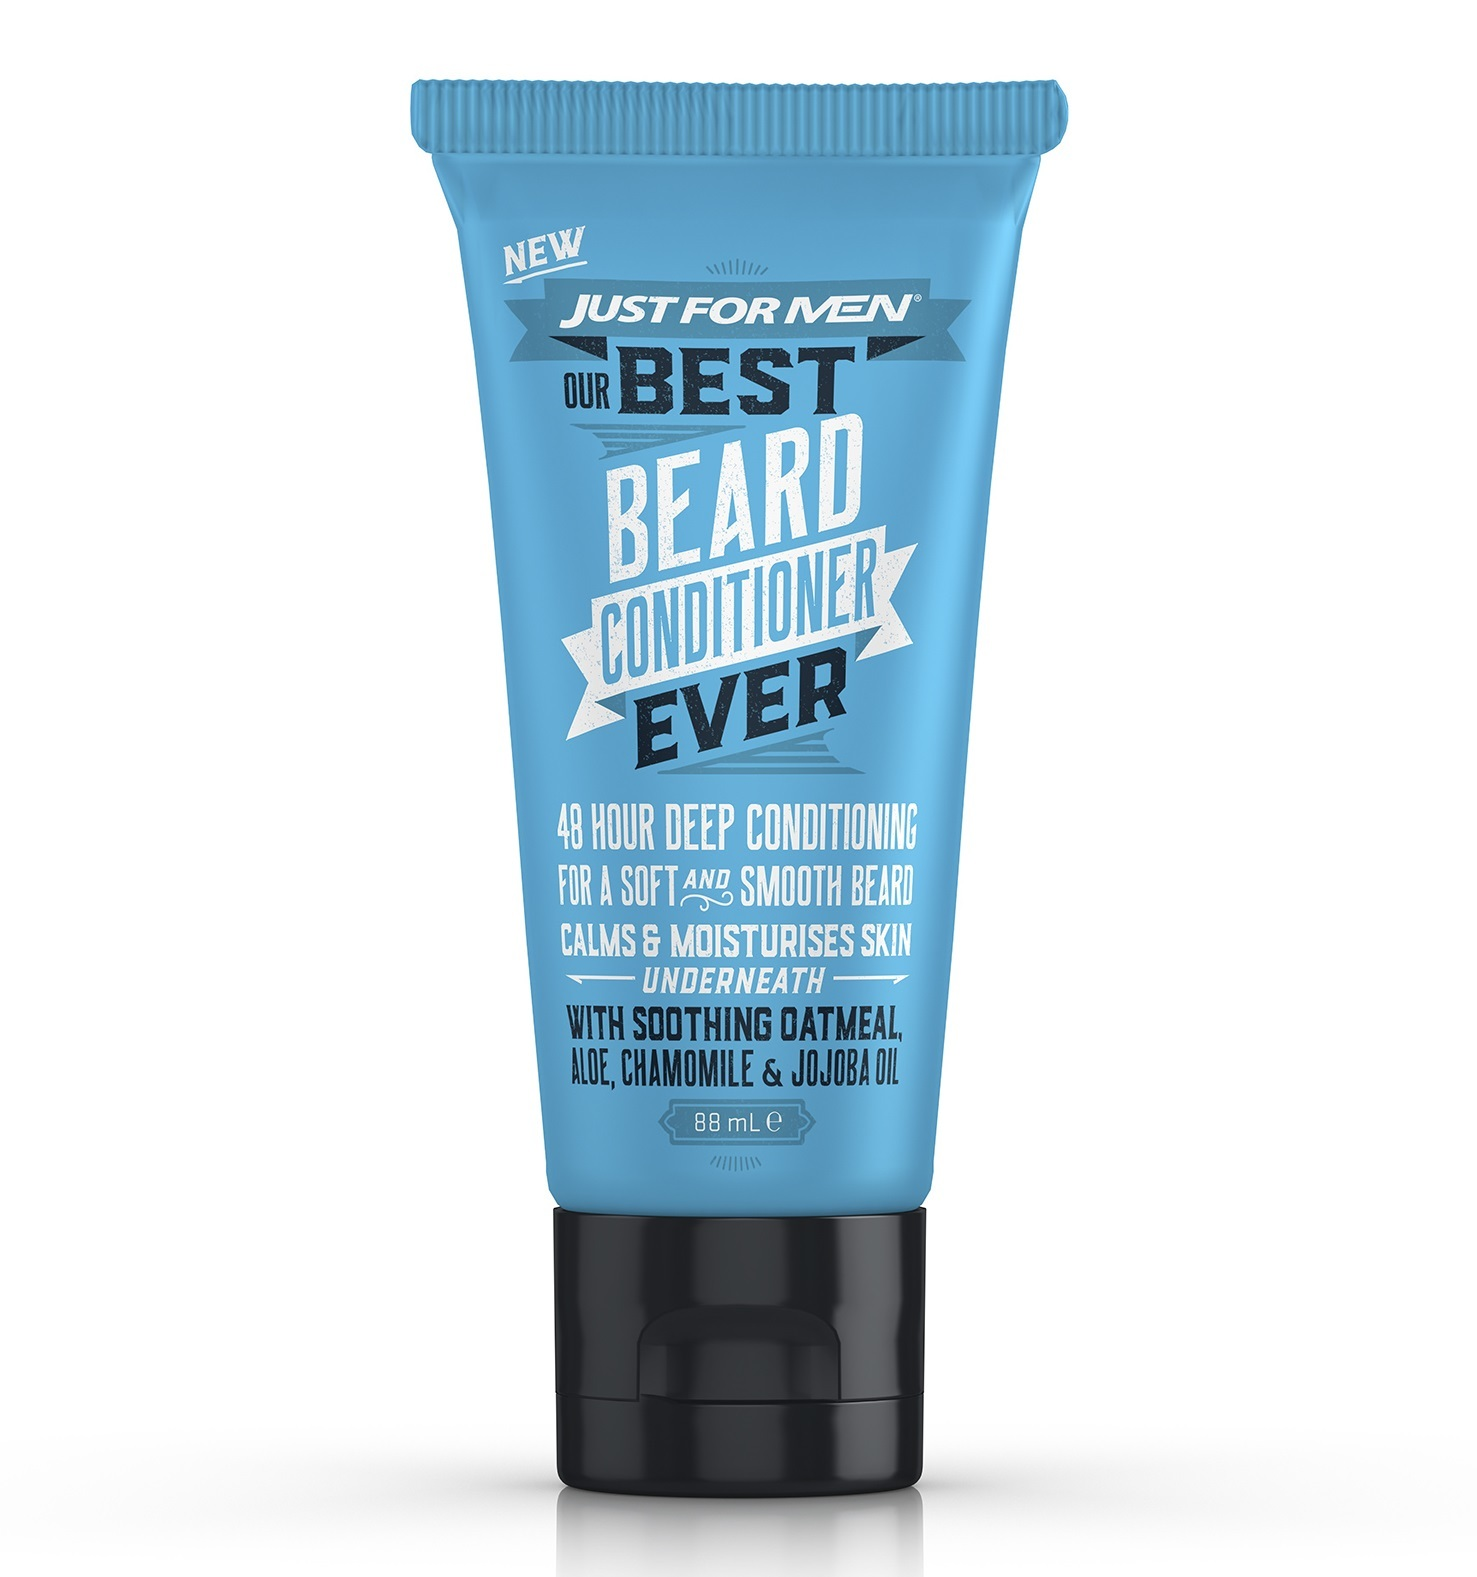 Just For Men Our Best Ever Beard Conditioner (88ml) image